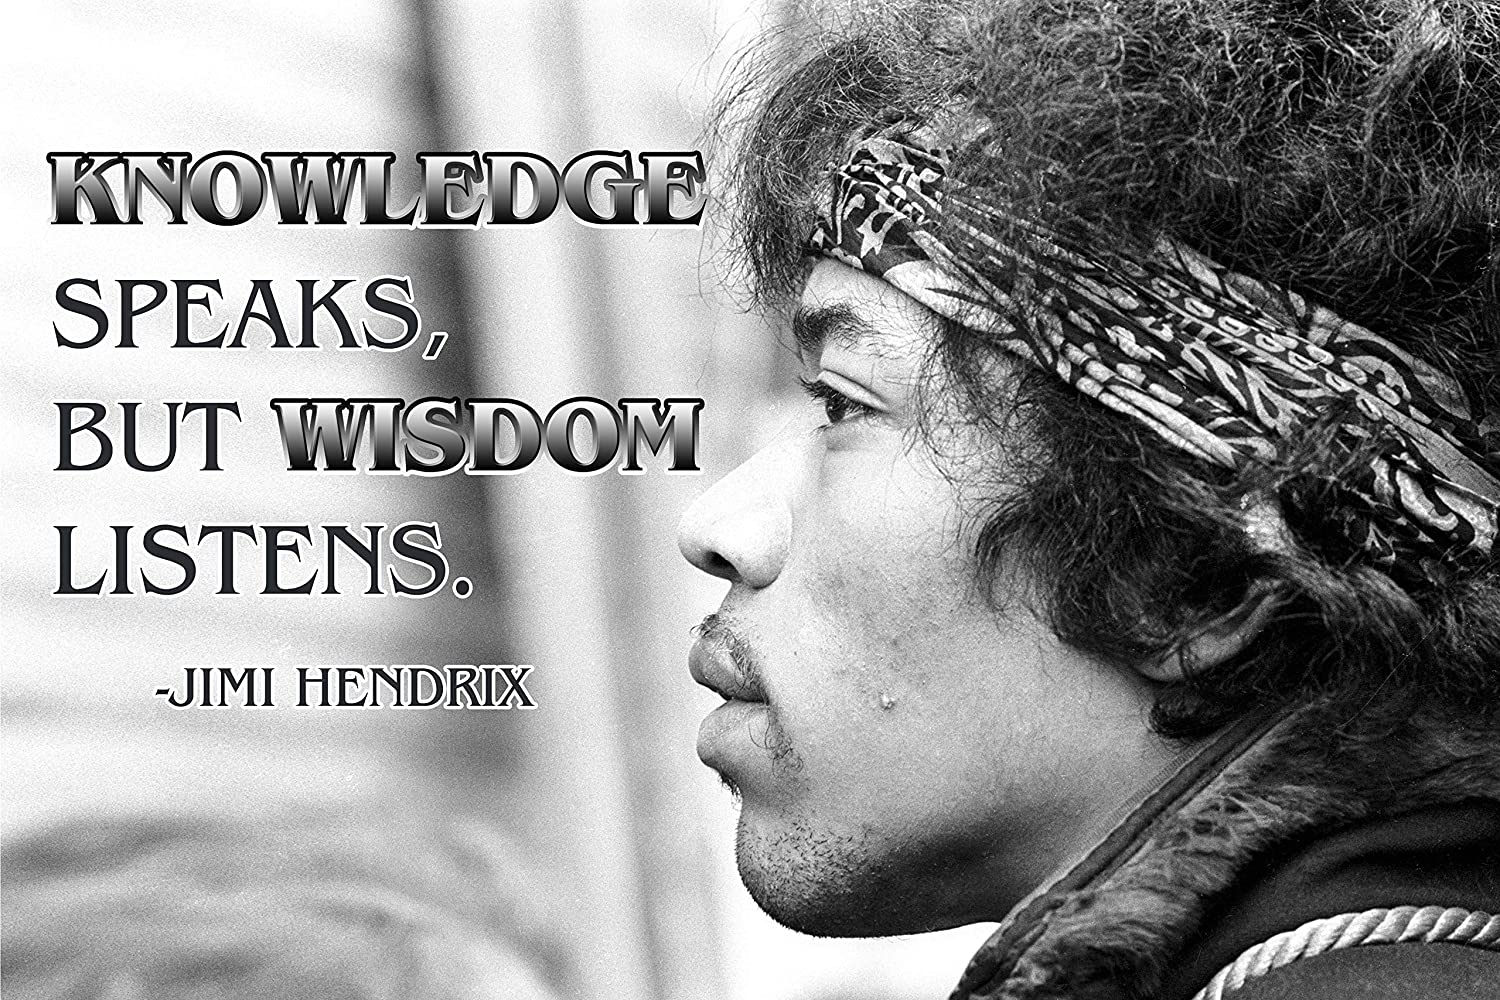 Jimi Hendrix Quote Poster Black History Month Posters Wall Art Music Quotes  Cool Woodstock 1969 Teaching Decorations Jimmy Classic Rock Decor Black ...